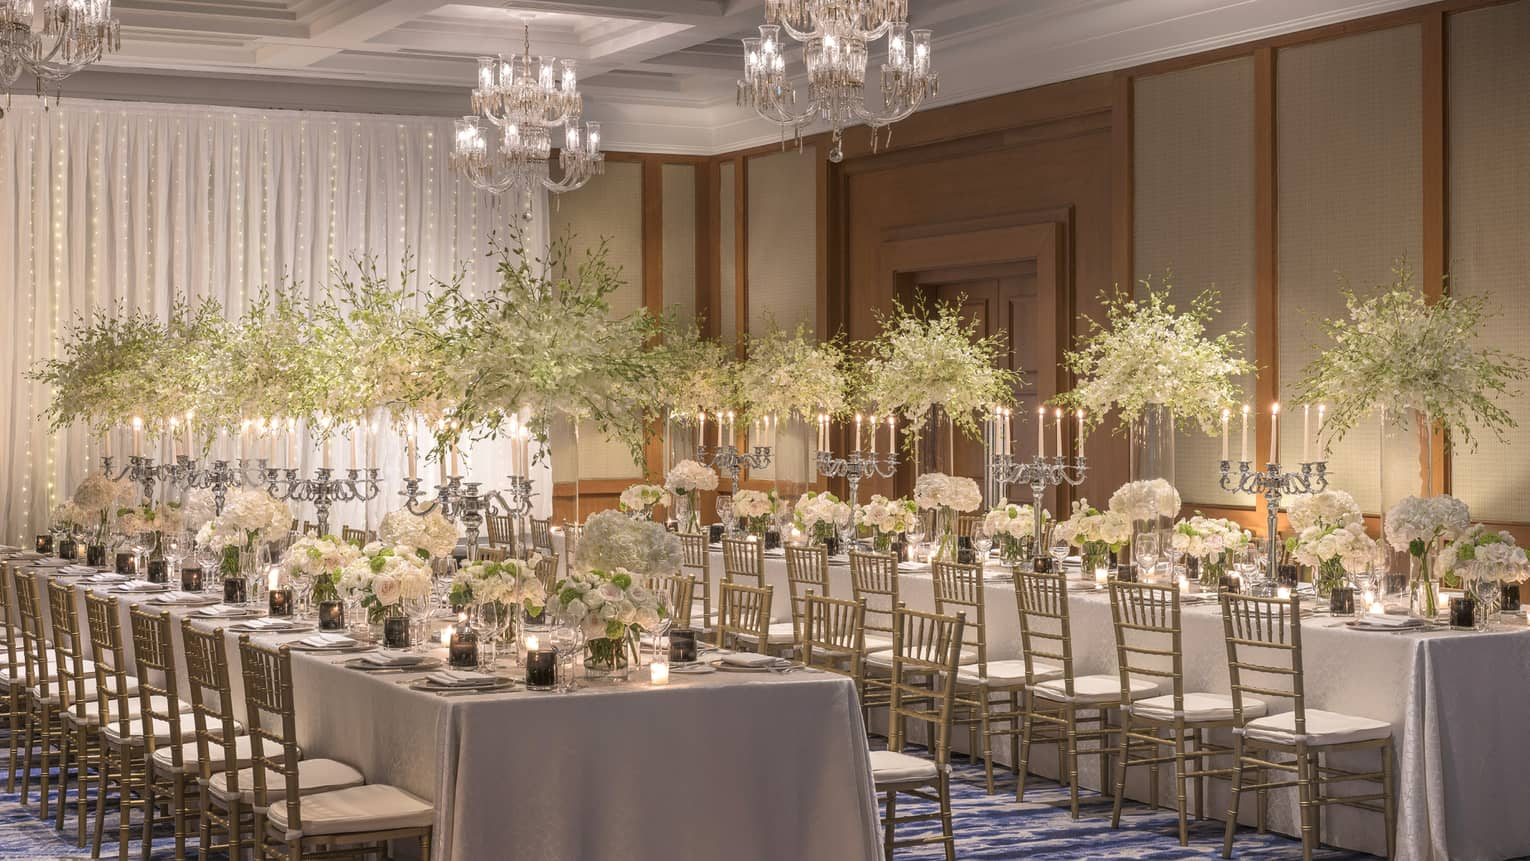 Two long tables are adorned with candelabras and tall and short bouquets of white flowers